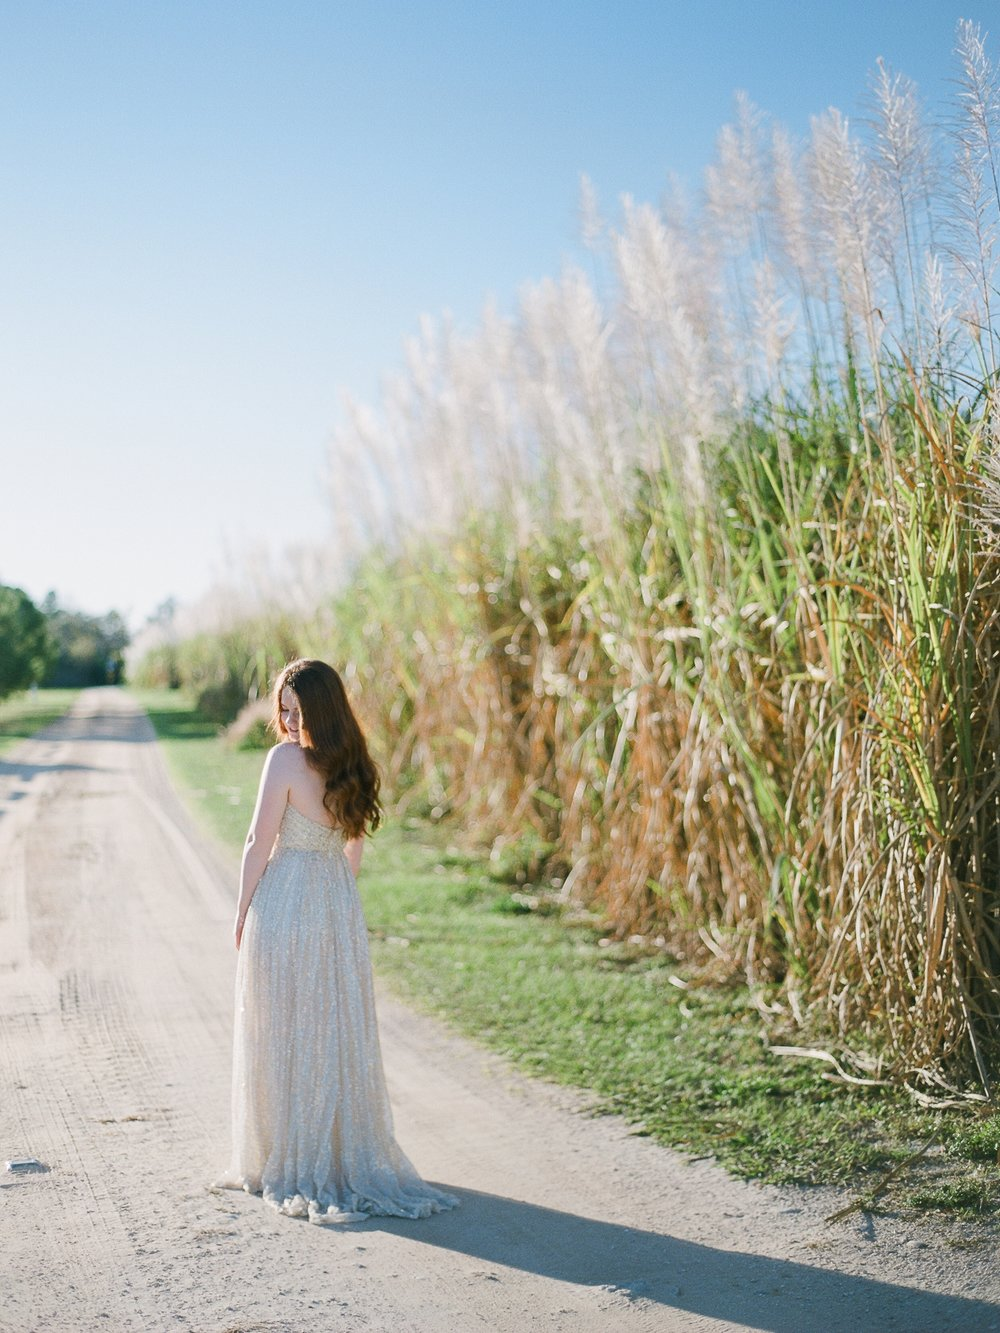 Sugarcane Inspired Shoot 2 6.jpg